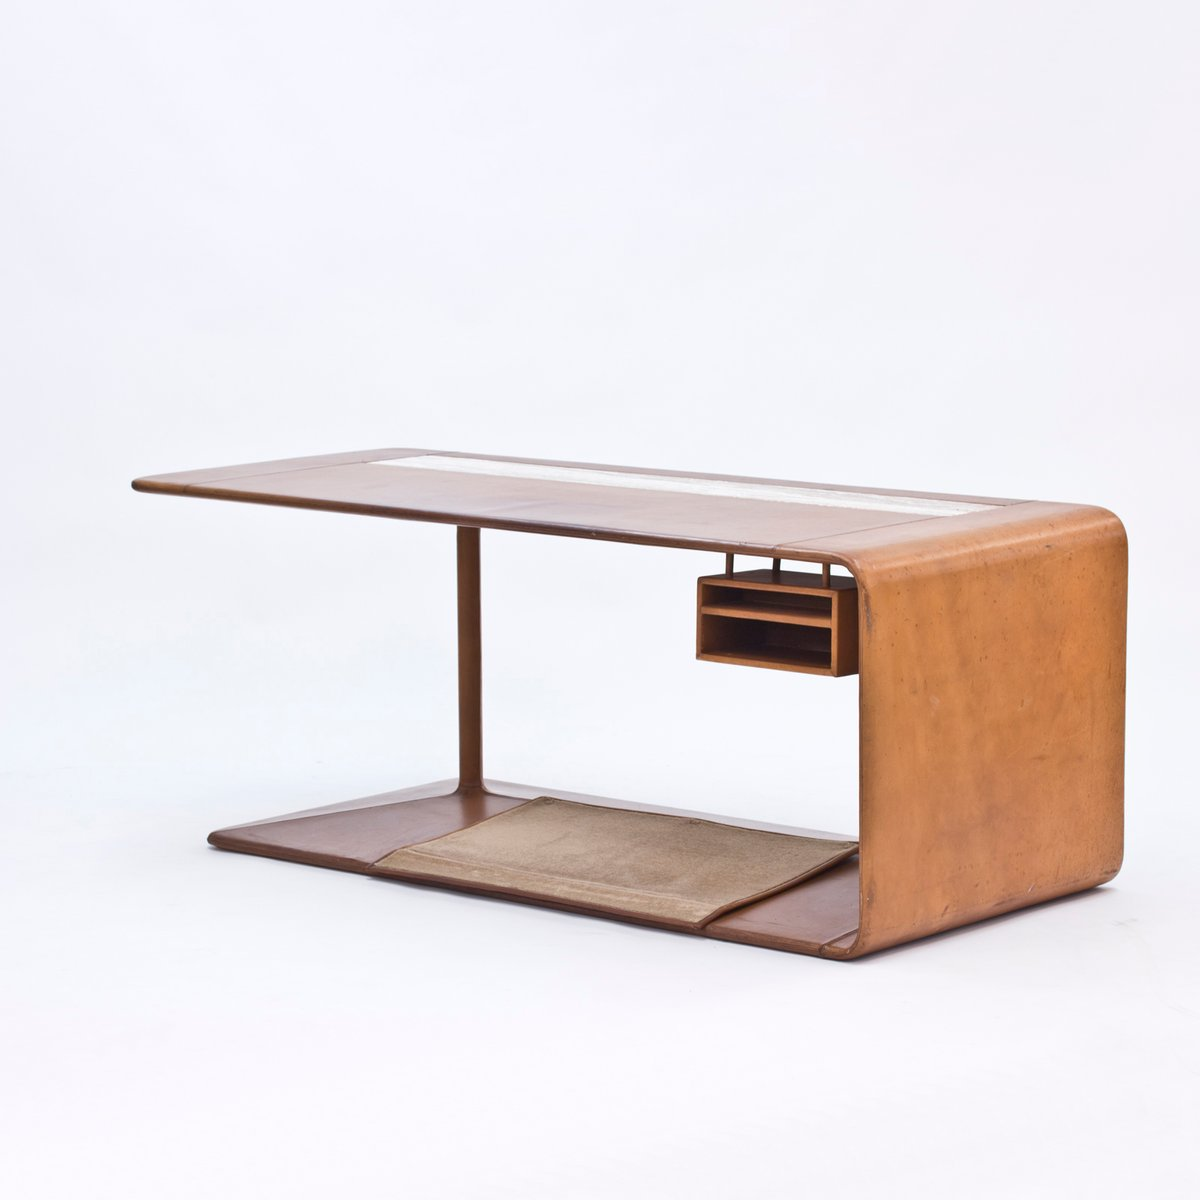 Custom made leather desk from nk 1965 for sale at pamono for Unique desks for sale